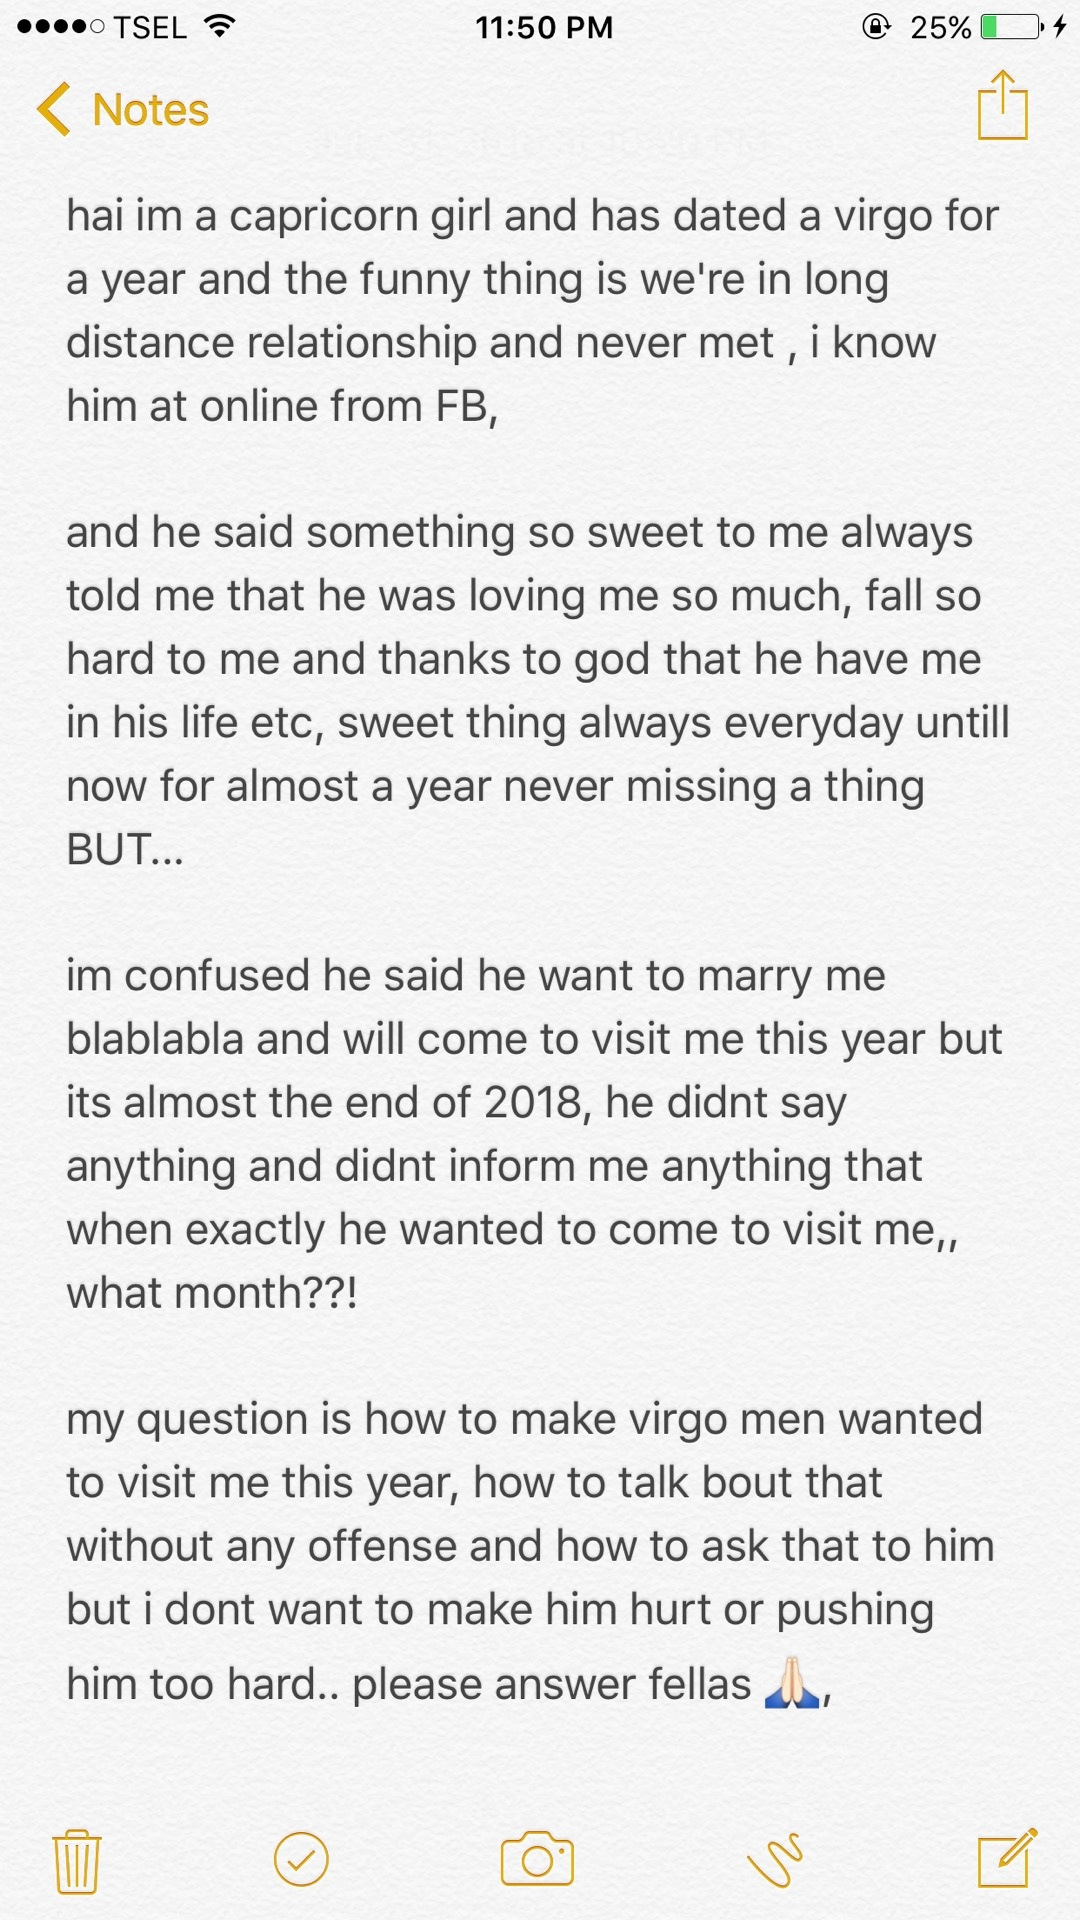 How to ask Virgo men to come to visit his LDR GF for the first time